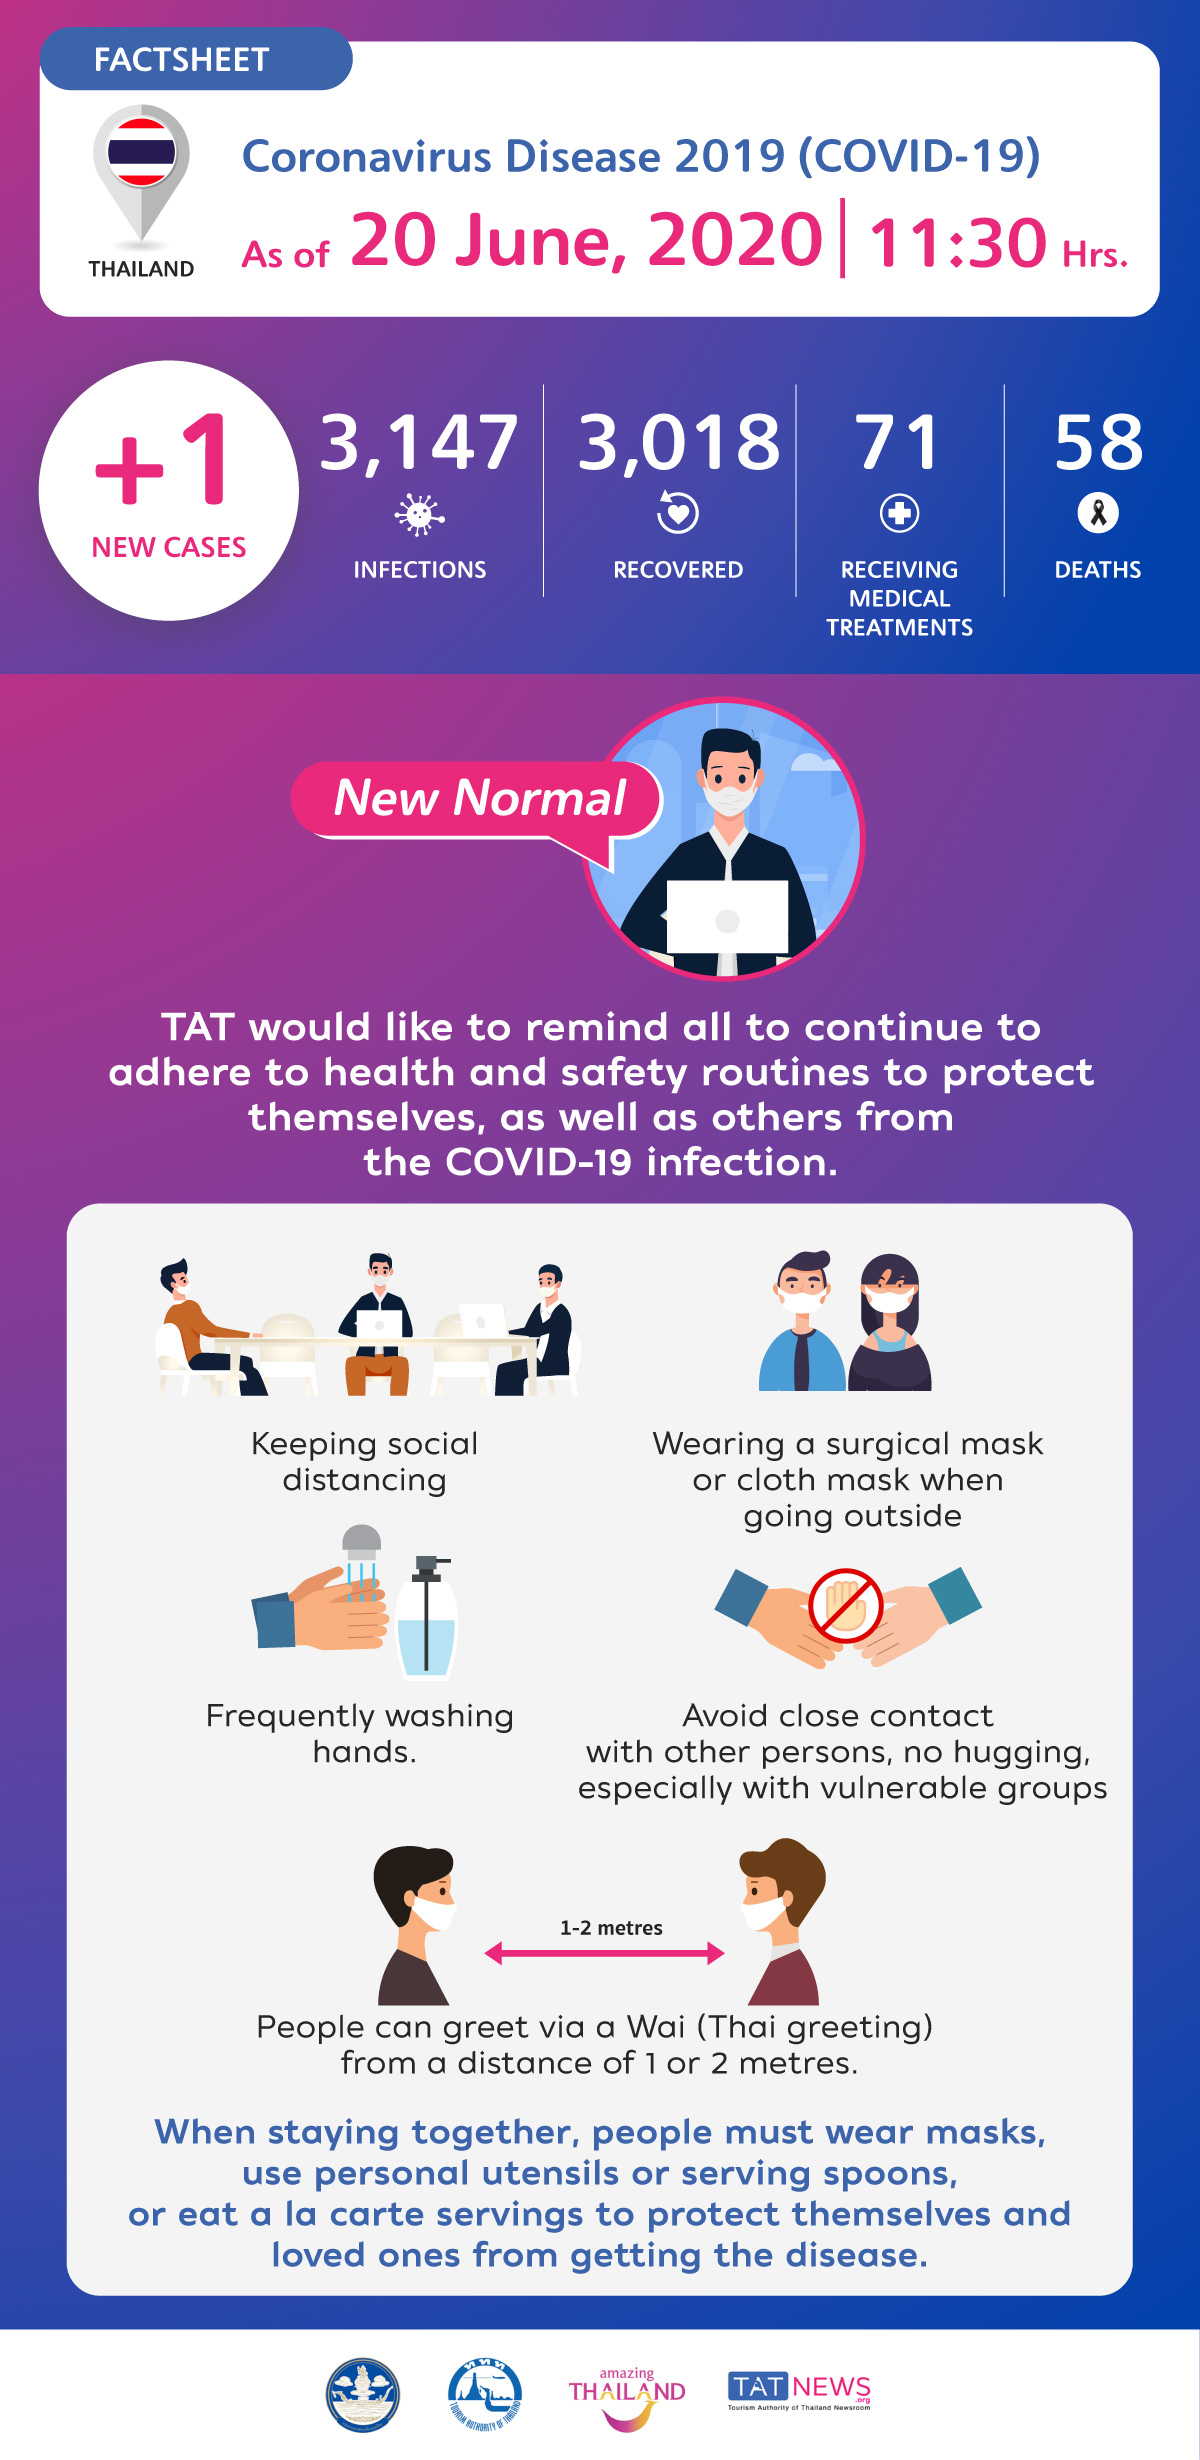 Coronavirus Disease 2019 (COVID-19) situation in Thailand as of 20 June 2020, 11.30 Hrs.